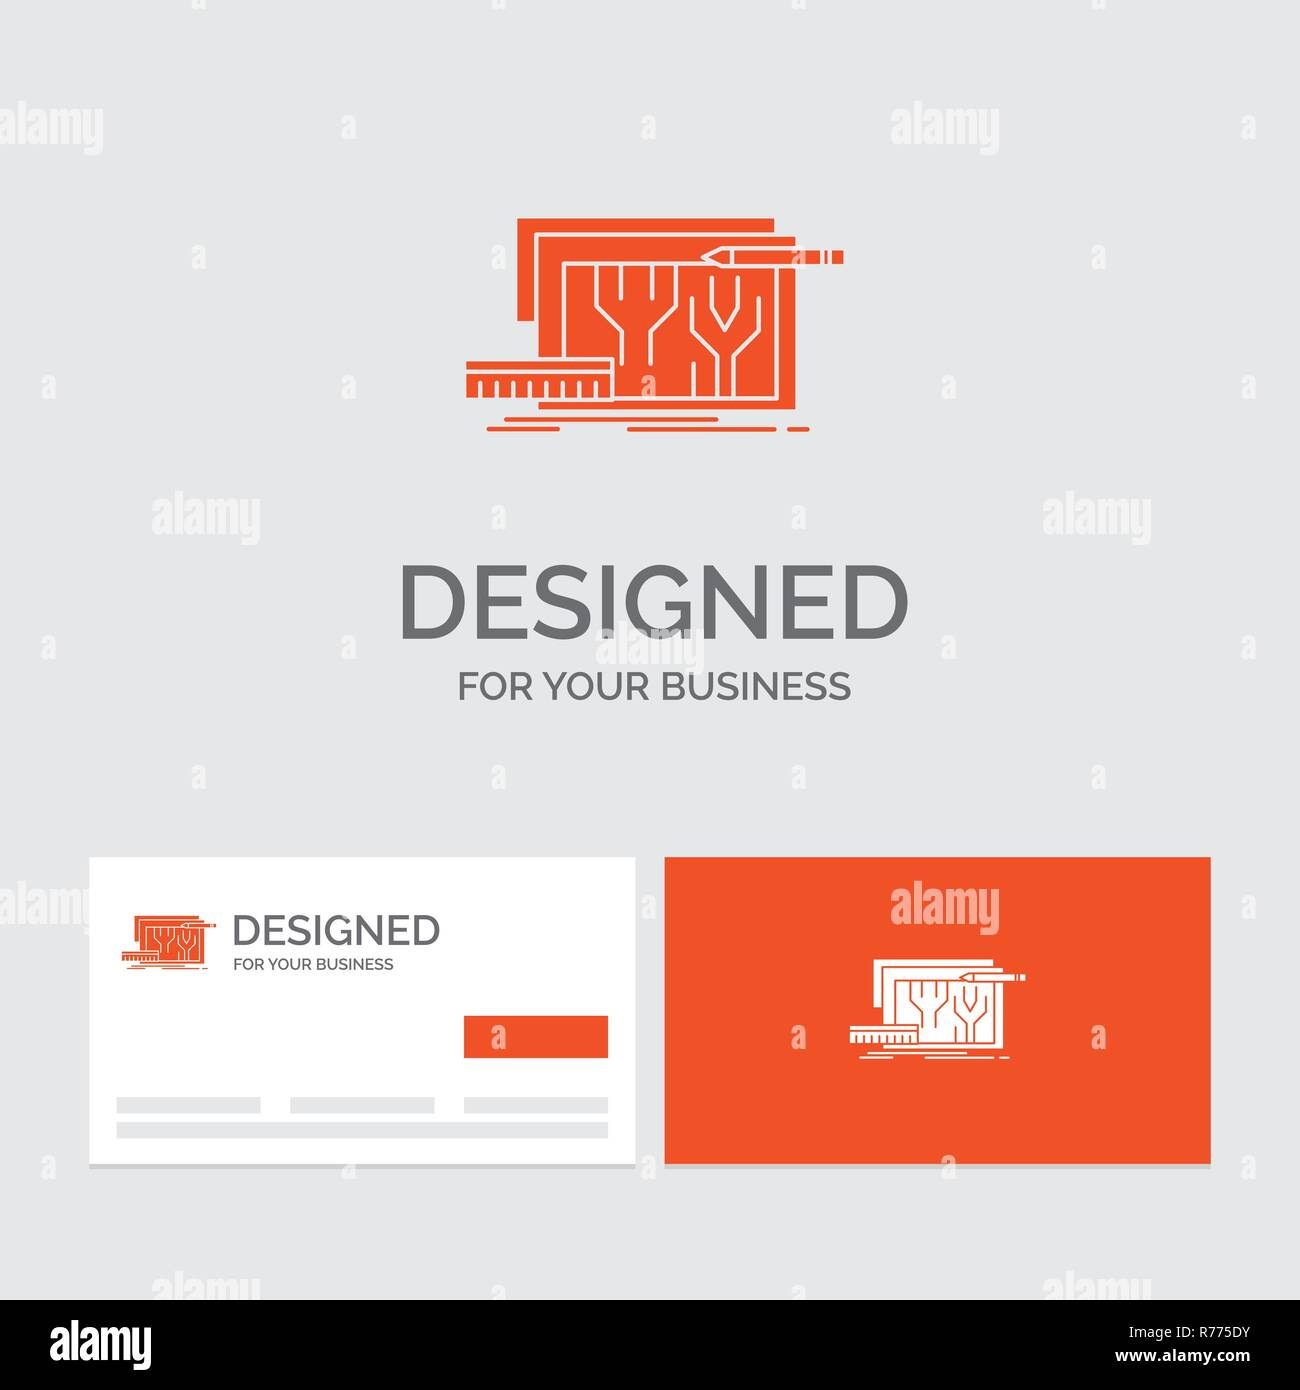 Business logo template for Architecture, blueprint, circuit, design, engineering. Orange Visiting Cards with Brand logo template. - Stock Image